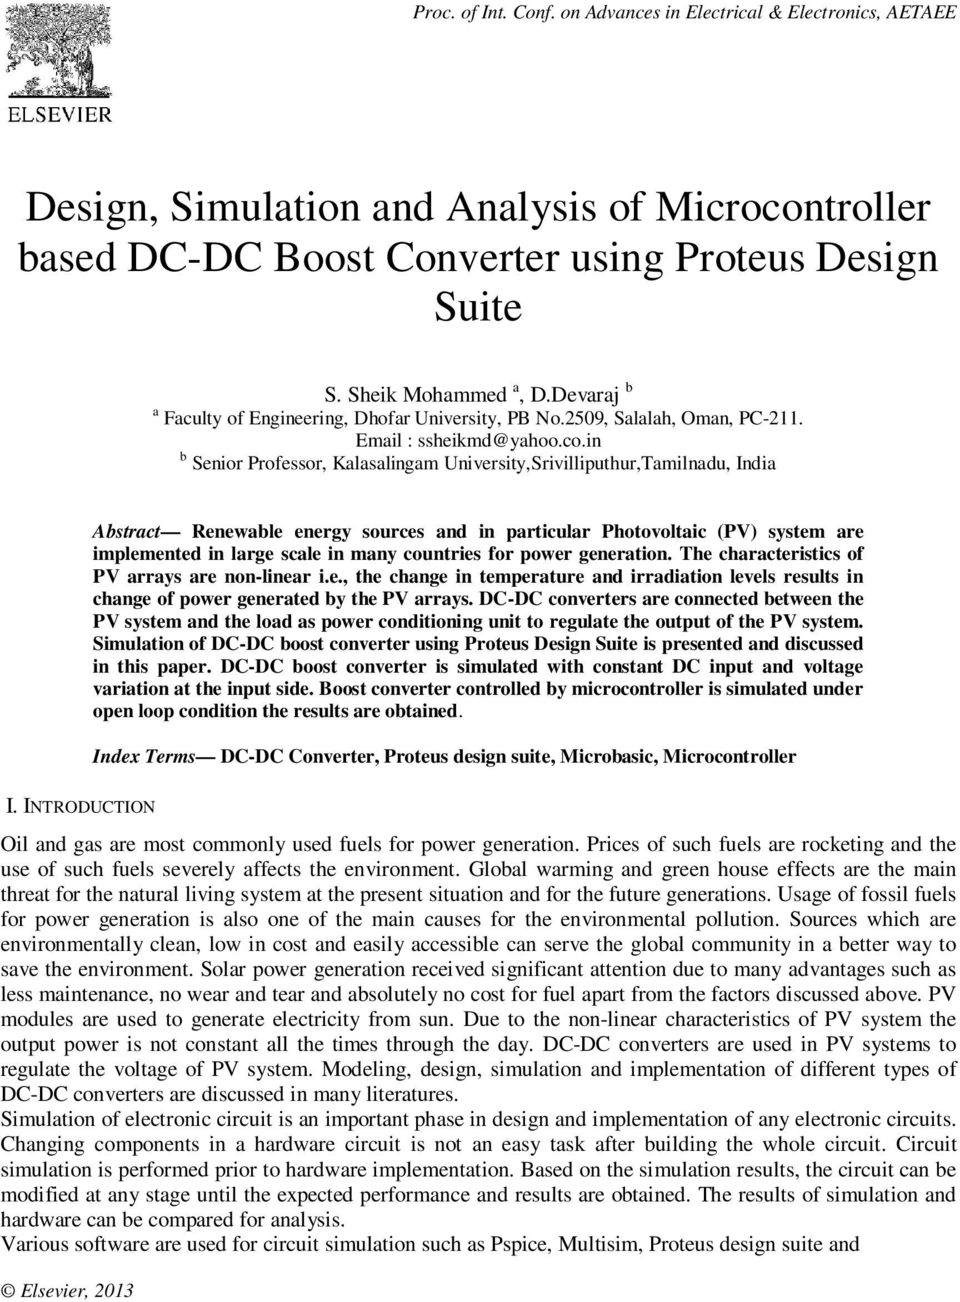 Results Circuit Simulation Is The Main Component Of Proteus 6 Design And Analysis Microcontroller Based Dc Boost In B Senior Professor Kalasalingam Universitysrivilliputhurtamilnadu India Abstract Renewable Energy